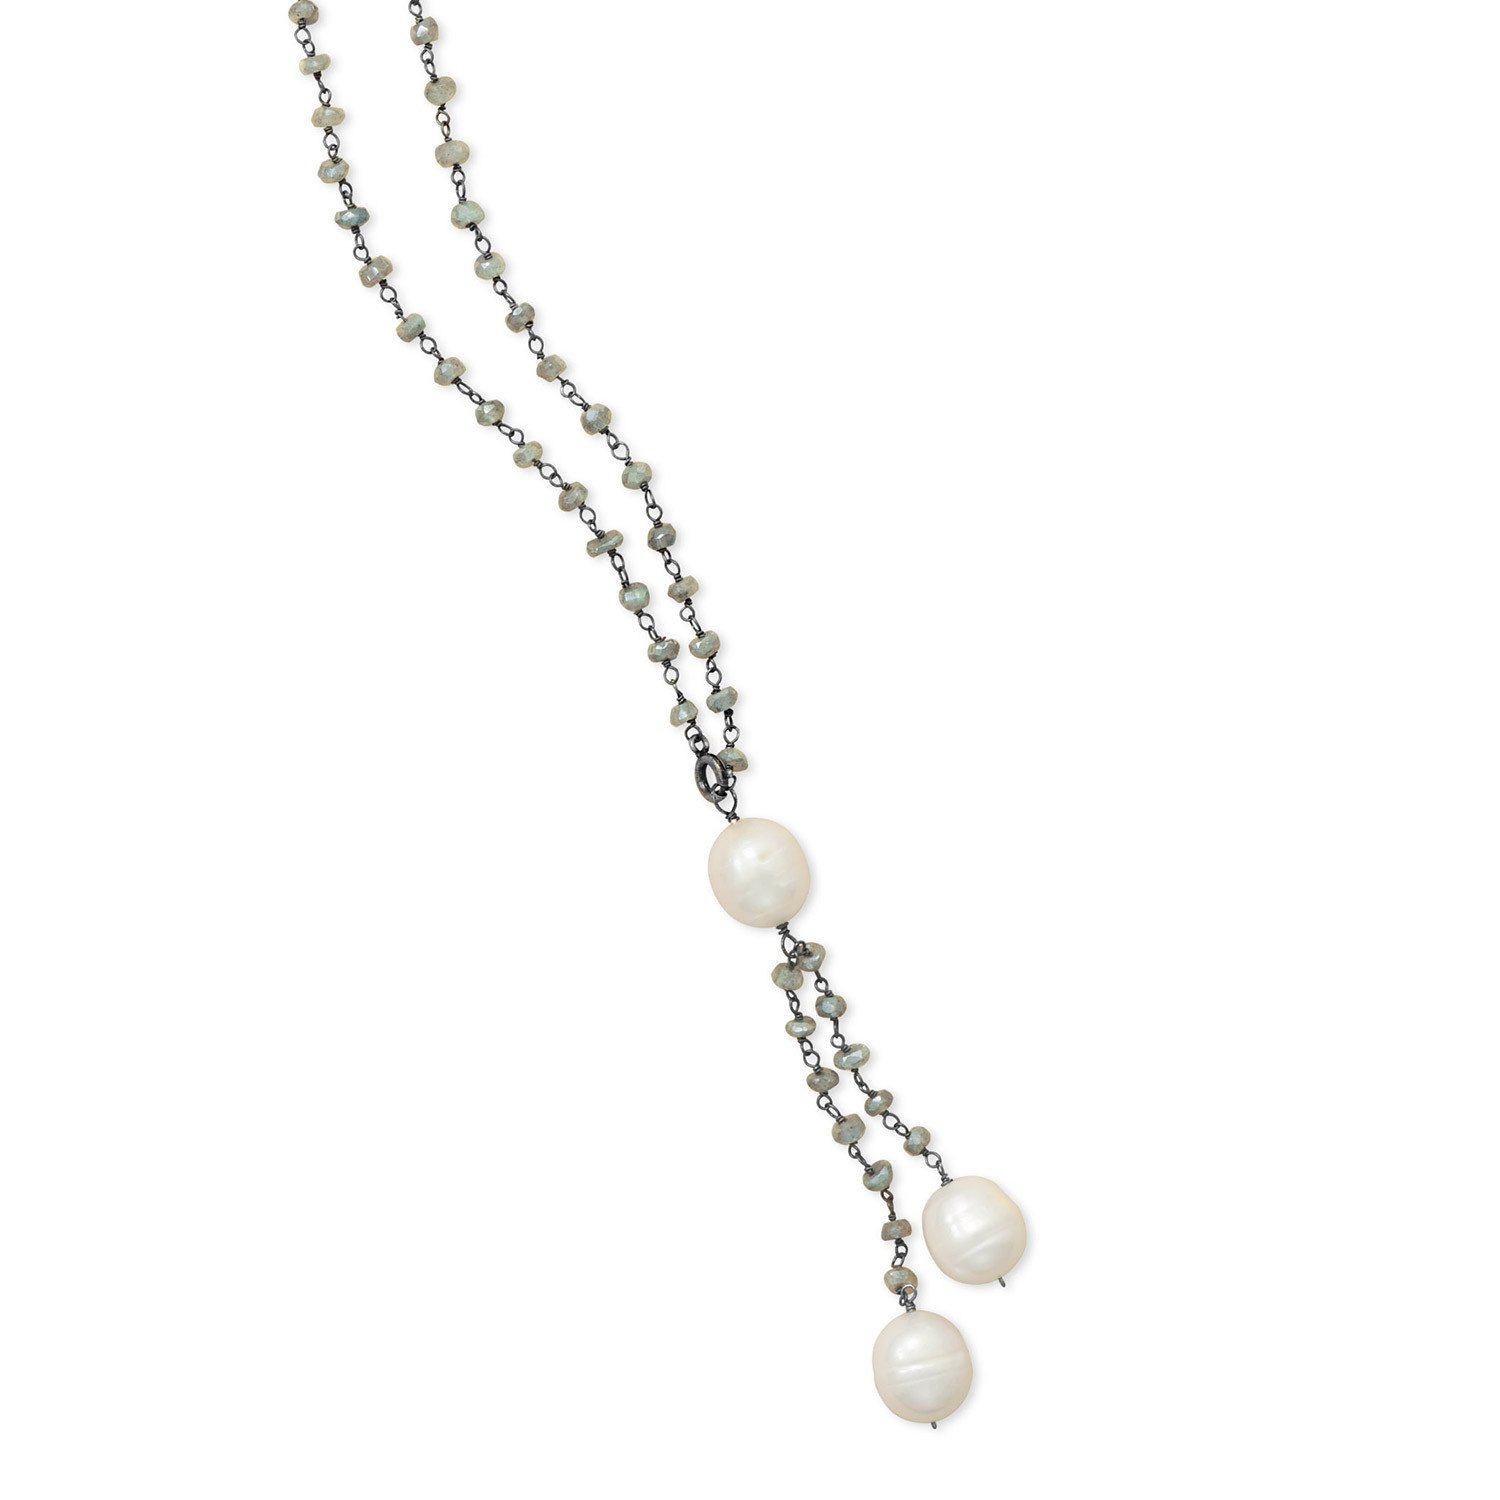 Labradorite Necklace with Cultured Freshwater Pearl Drop